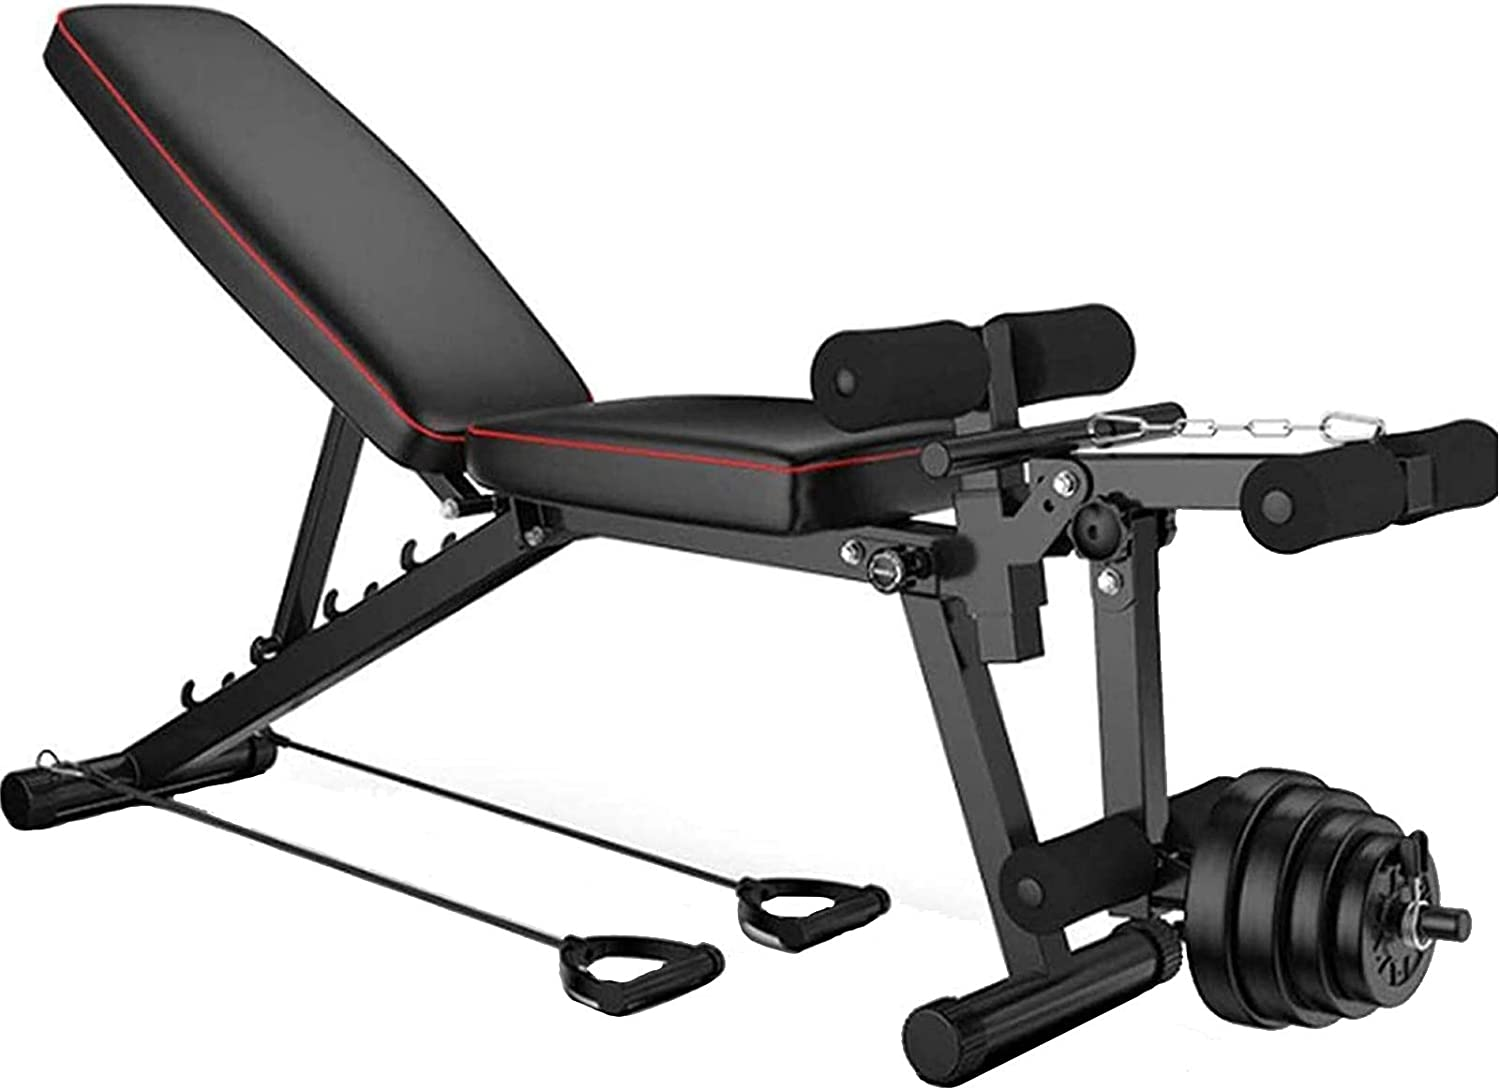 JUAN Exercise Bench Foldable,Weight Bench With Leg Extension And Leg Curl,Comfortable Padding,Multi-adjustable Backrest Sit Up Bench For Home Gym Fitness,Max 200kg